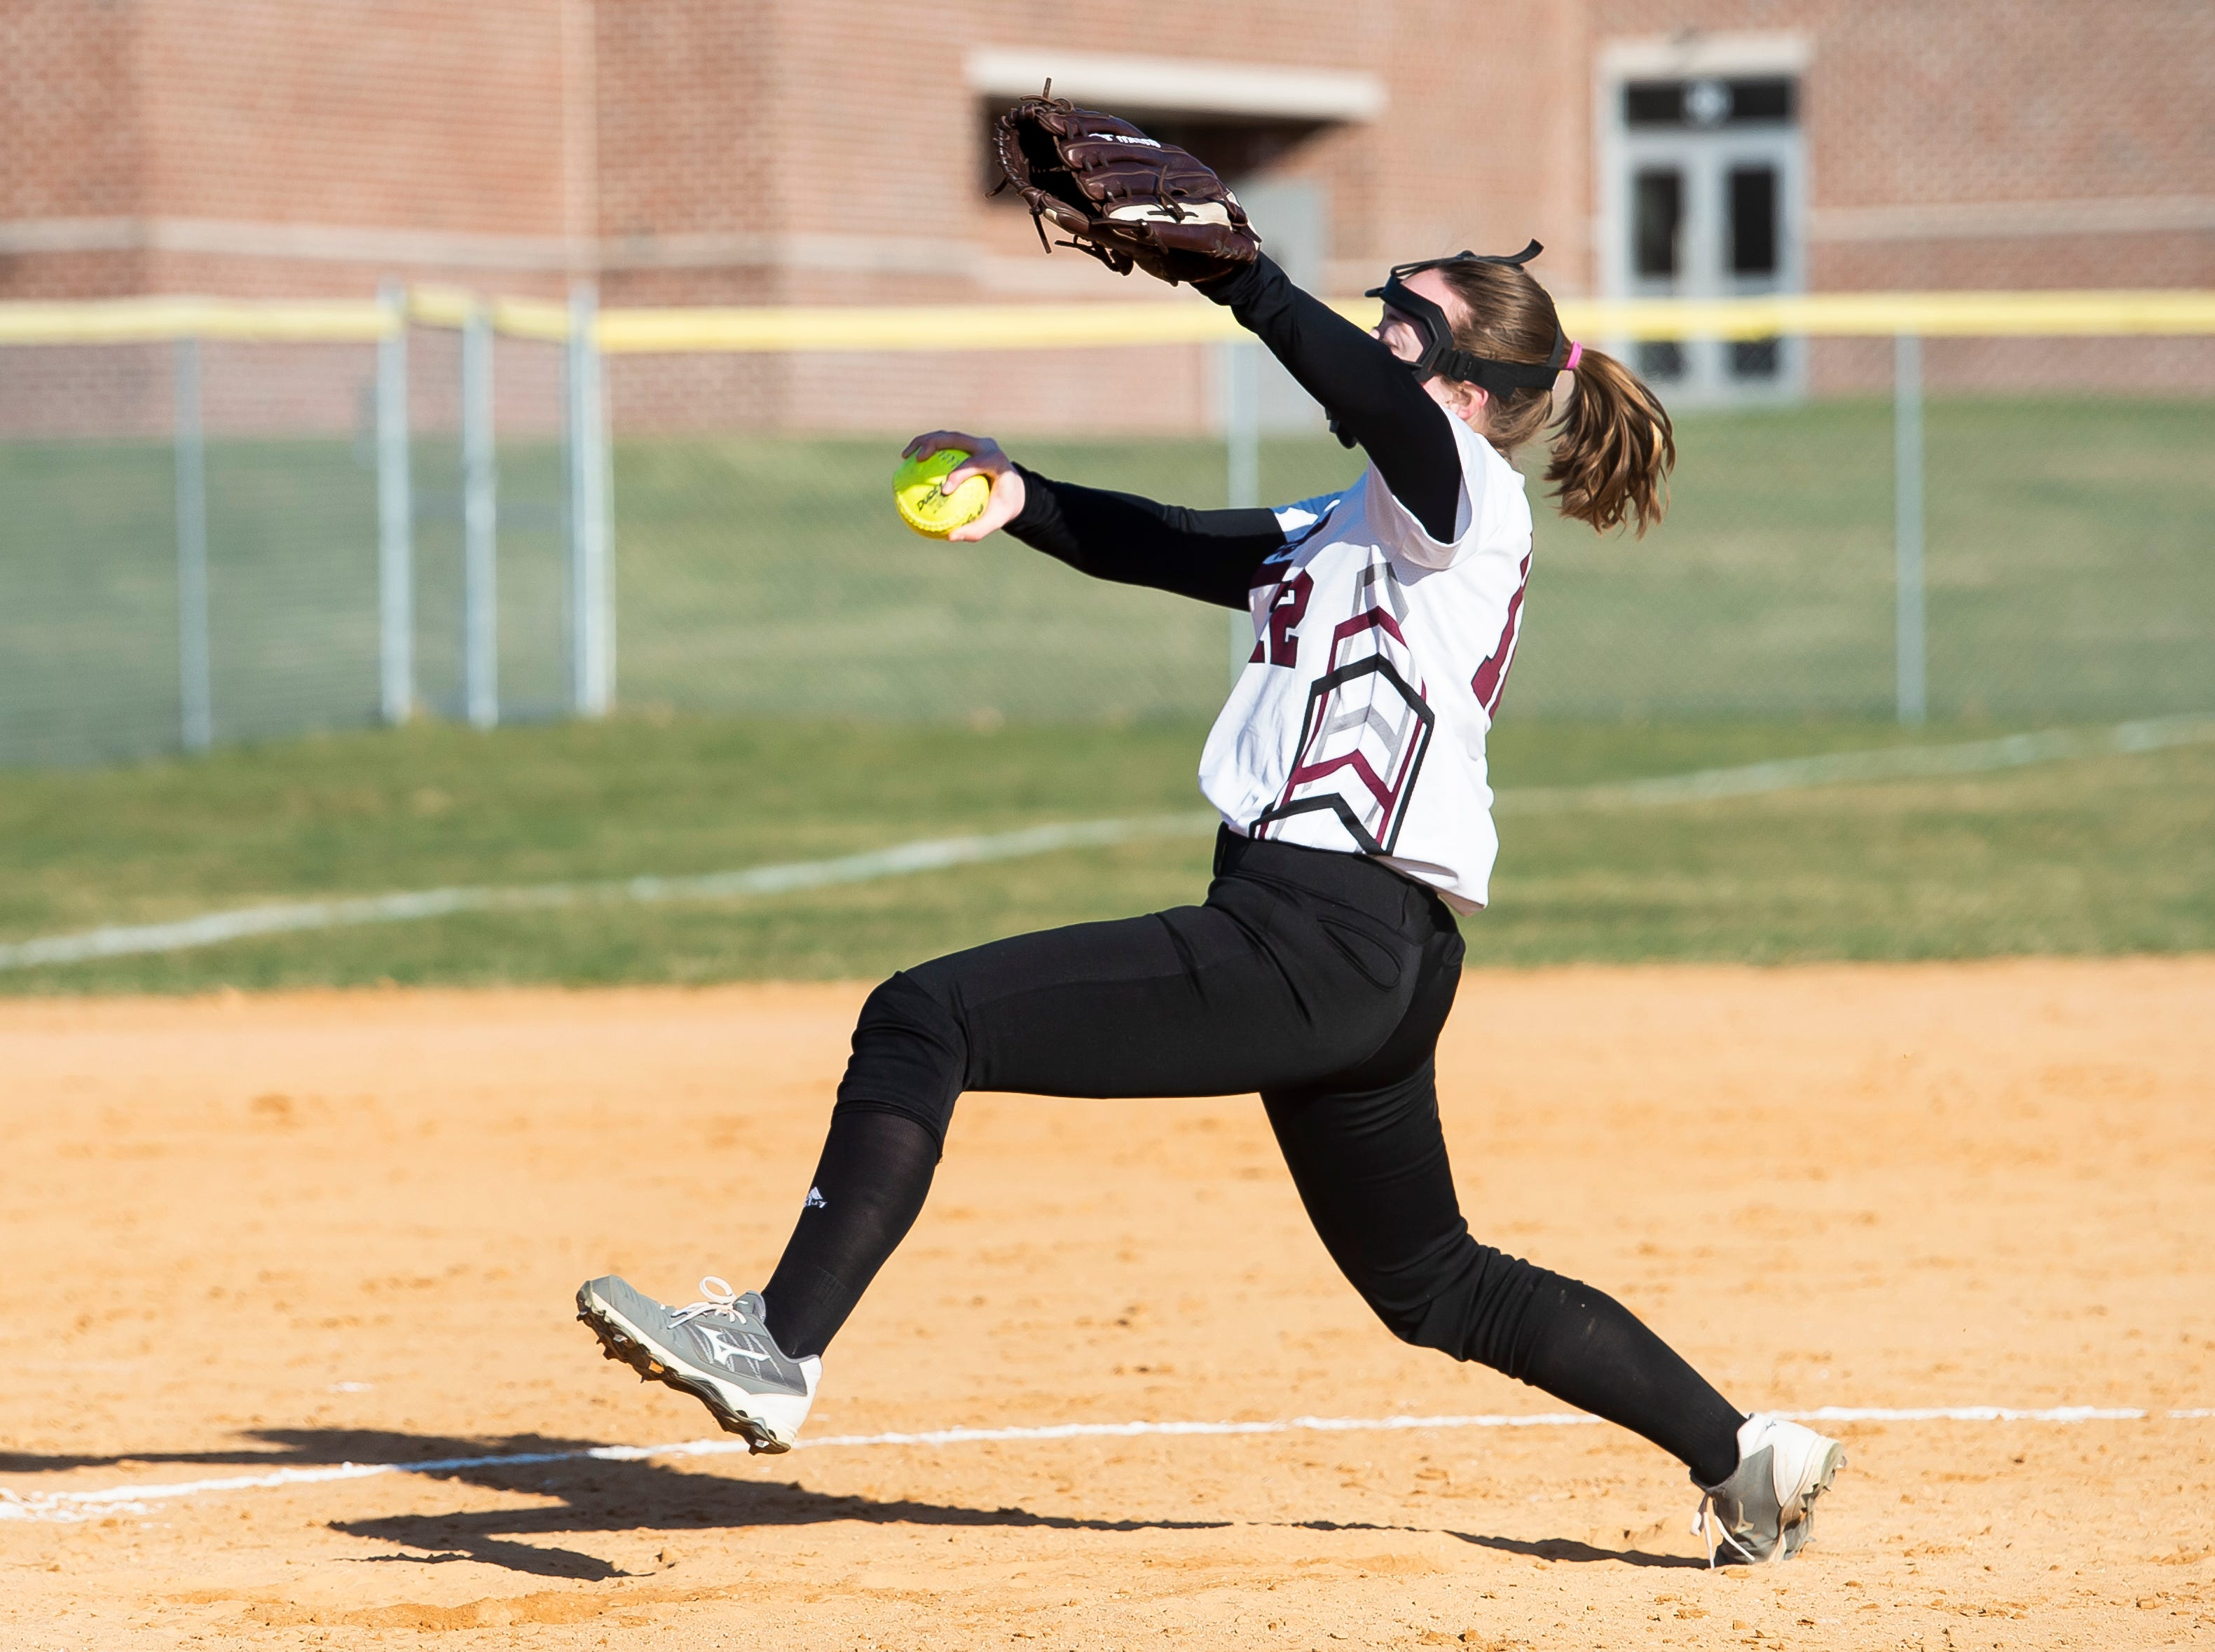 Gettysburg's Jenna Brasee pitches during a YAIAA softball game against Littlestown on Monday, April 1, 2019. The Warriors fell 10-4.